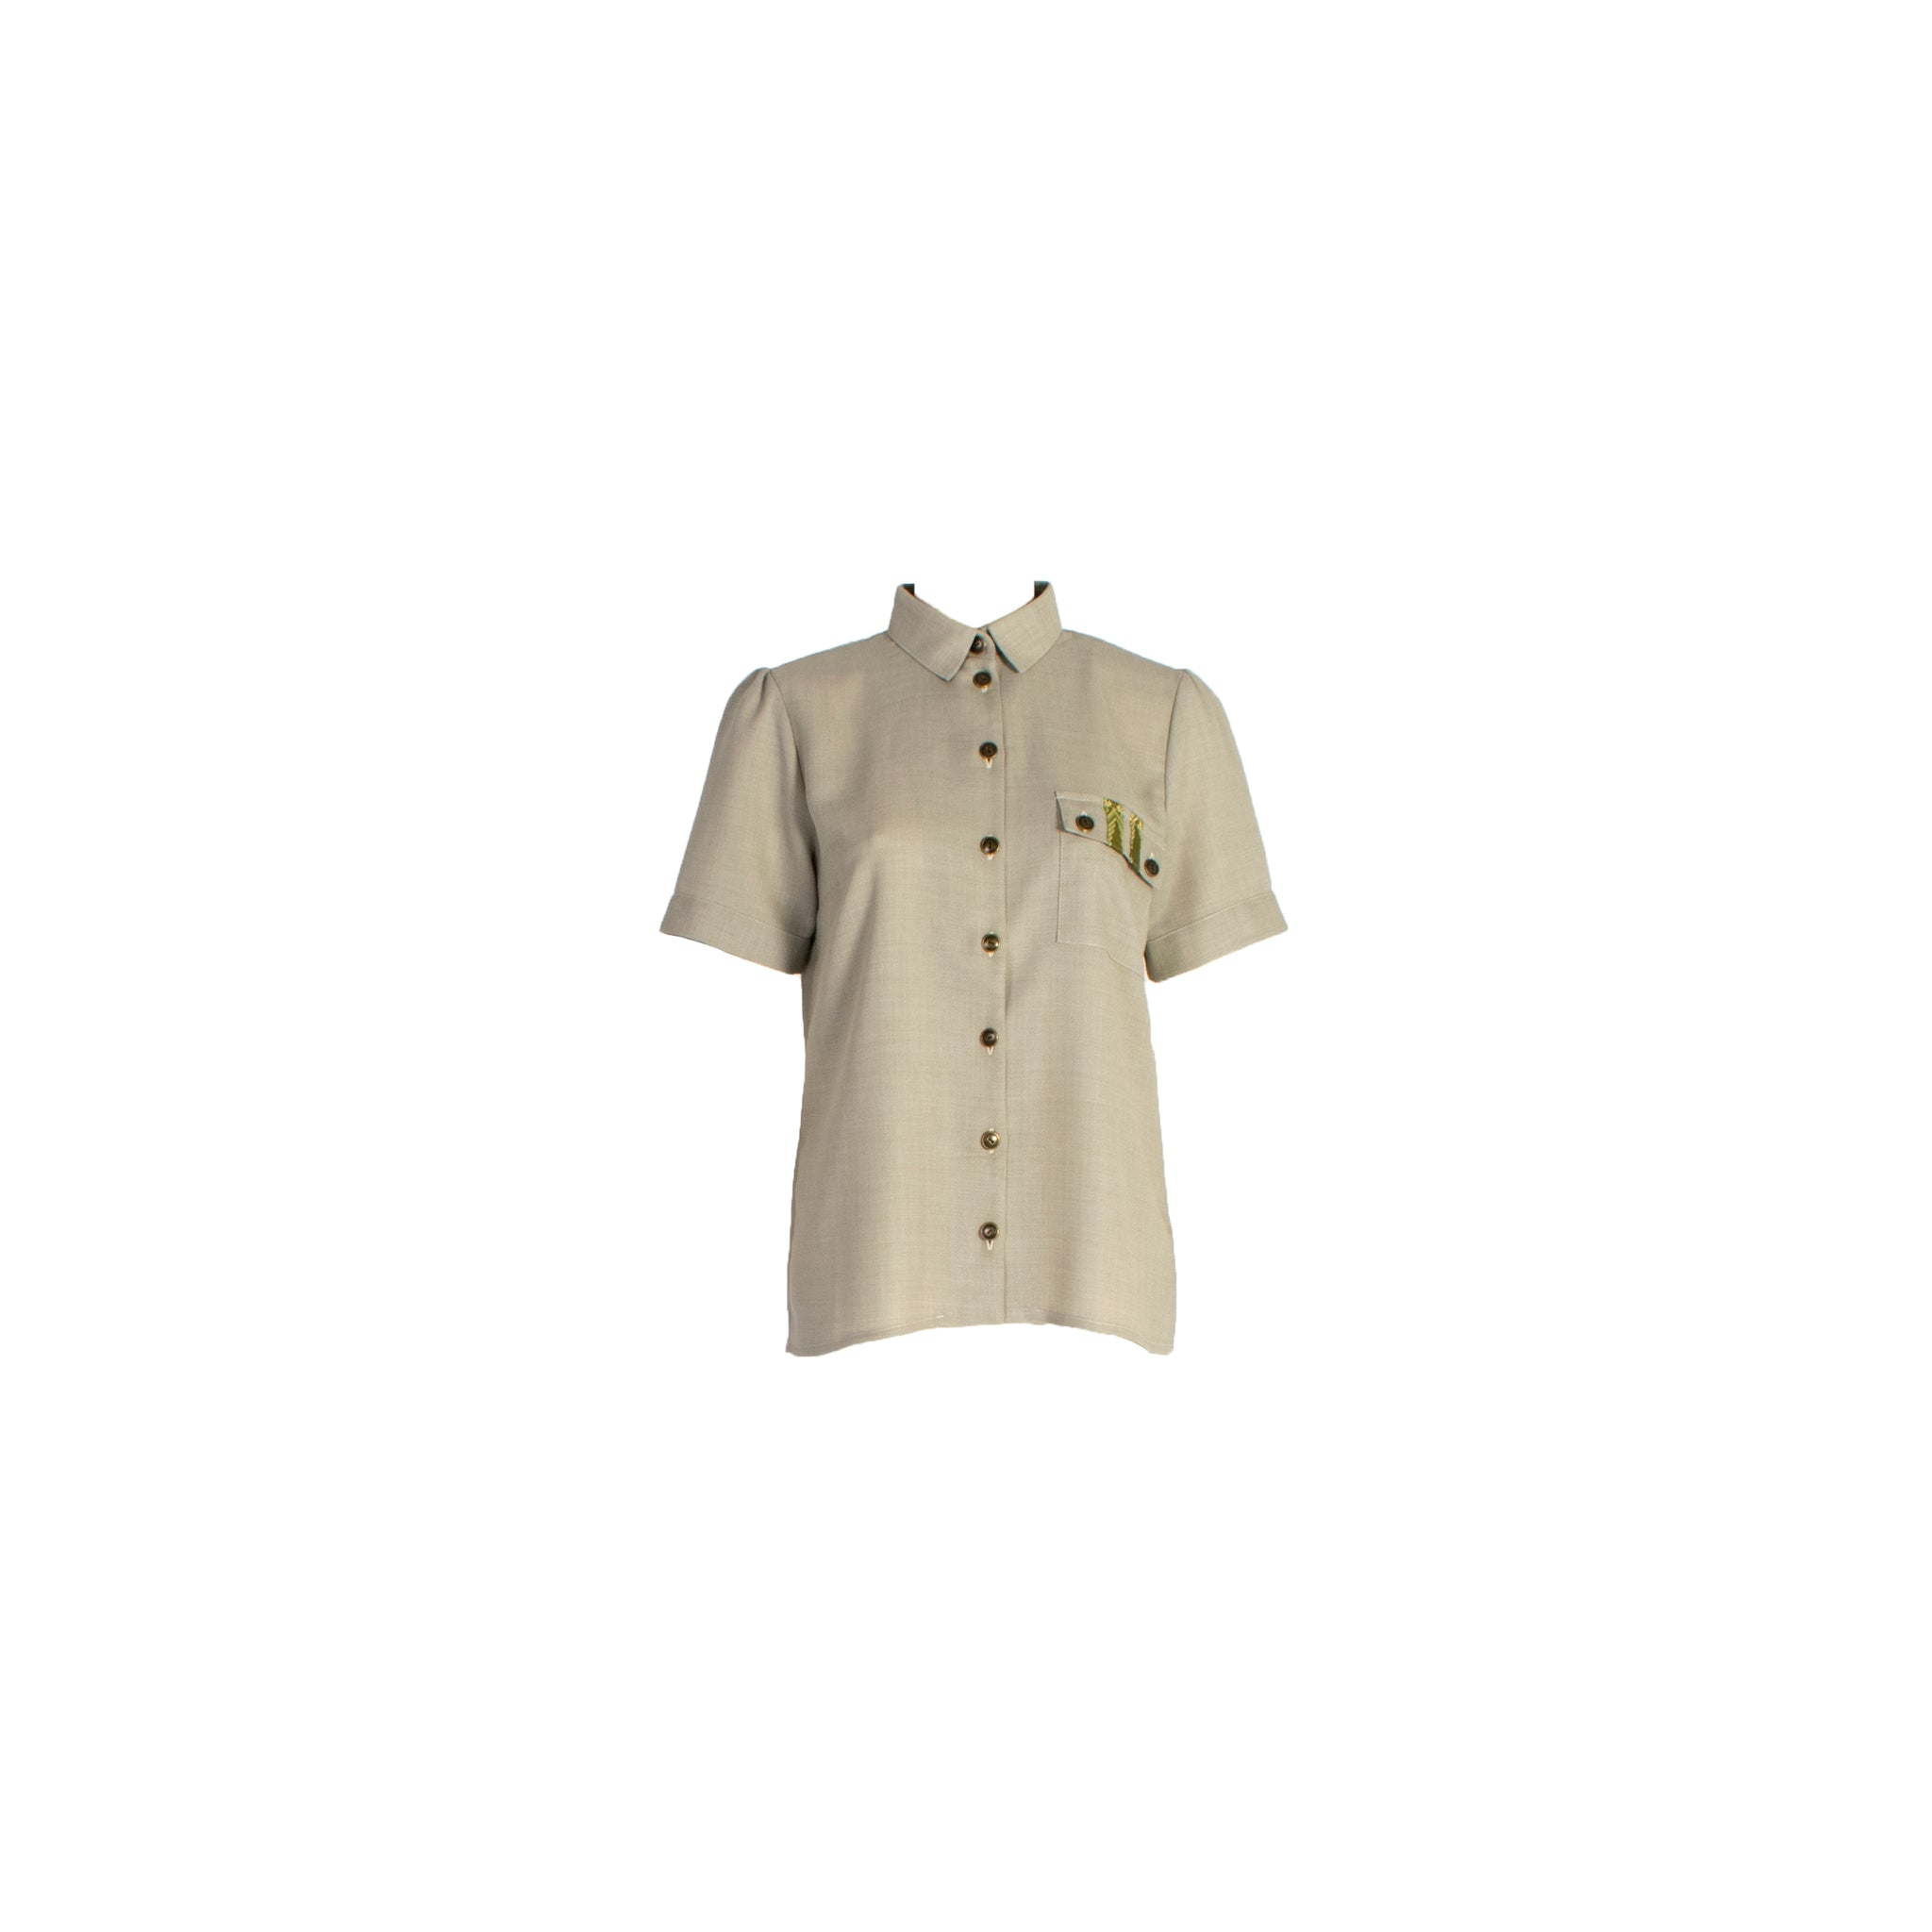 Short Sleeve Wool Button Up Shirt with Chest Pockets Grey